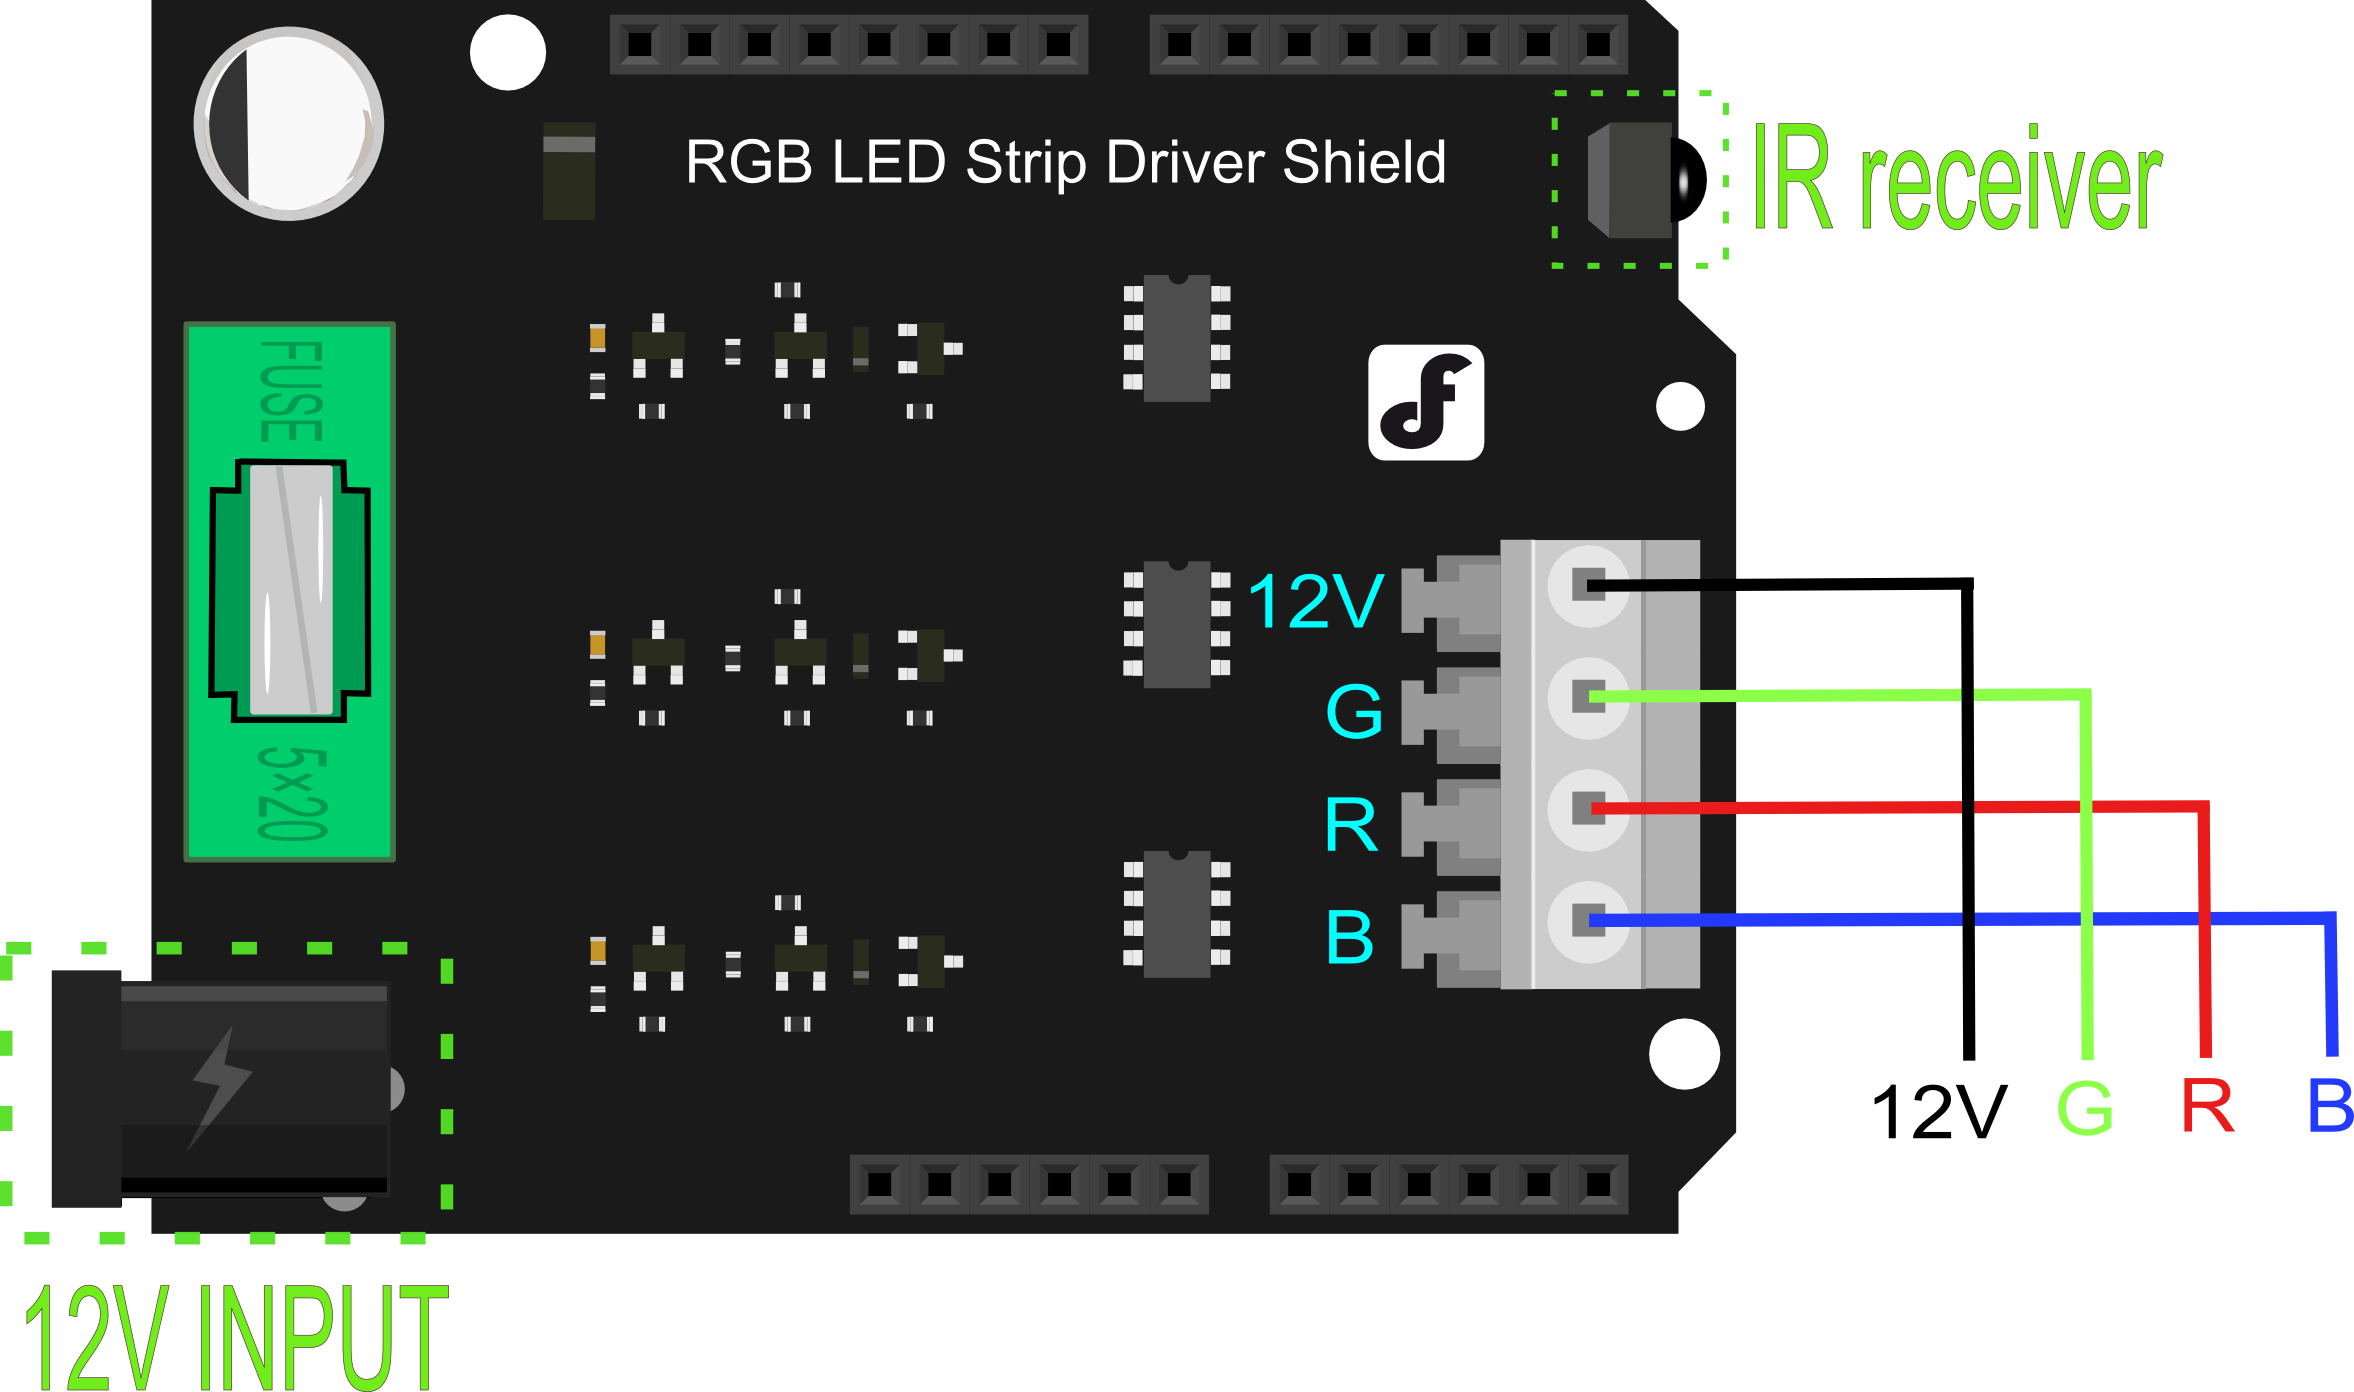 RGB_LED_Strip_Driver_Shield.png